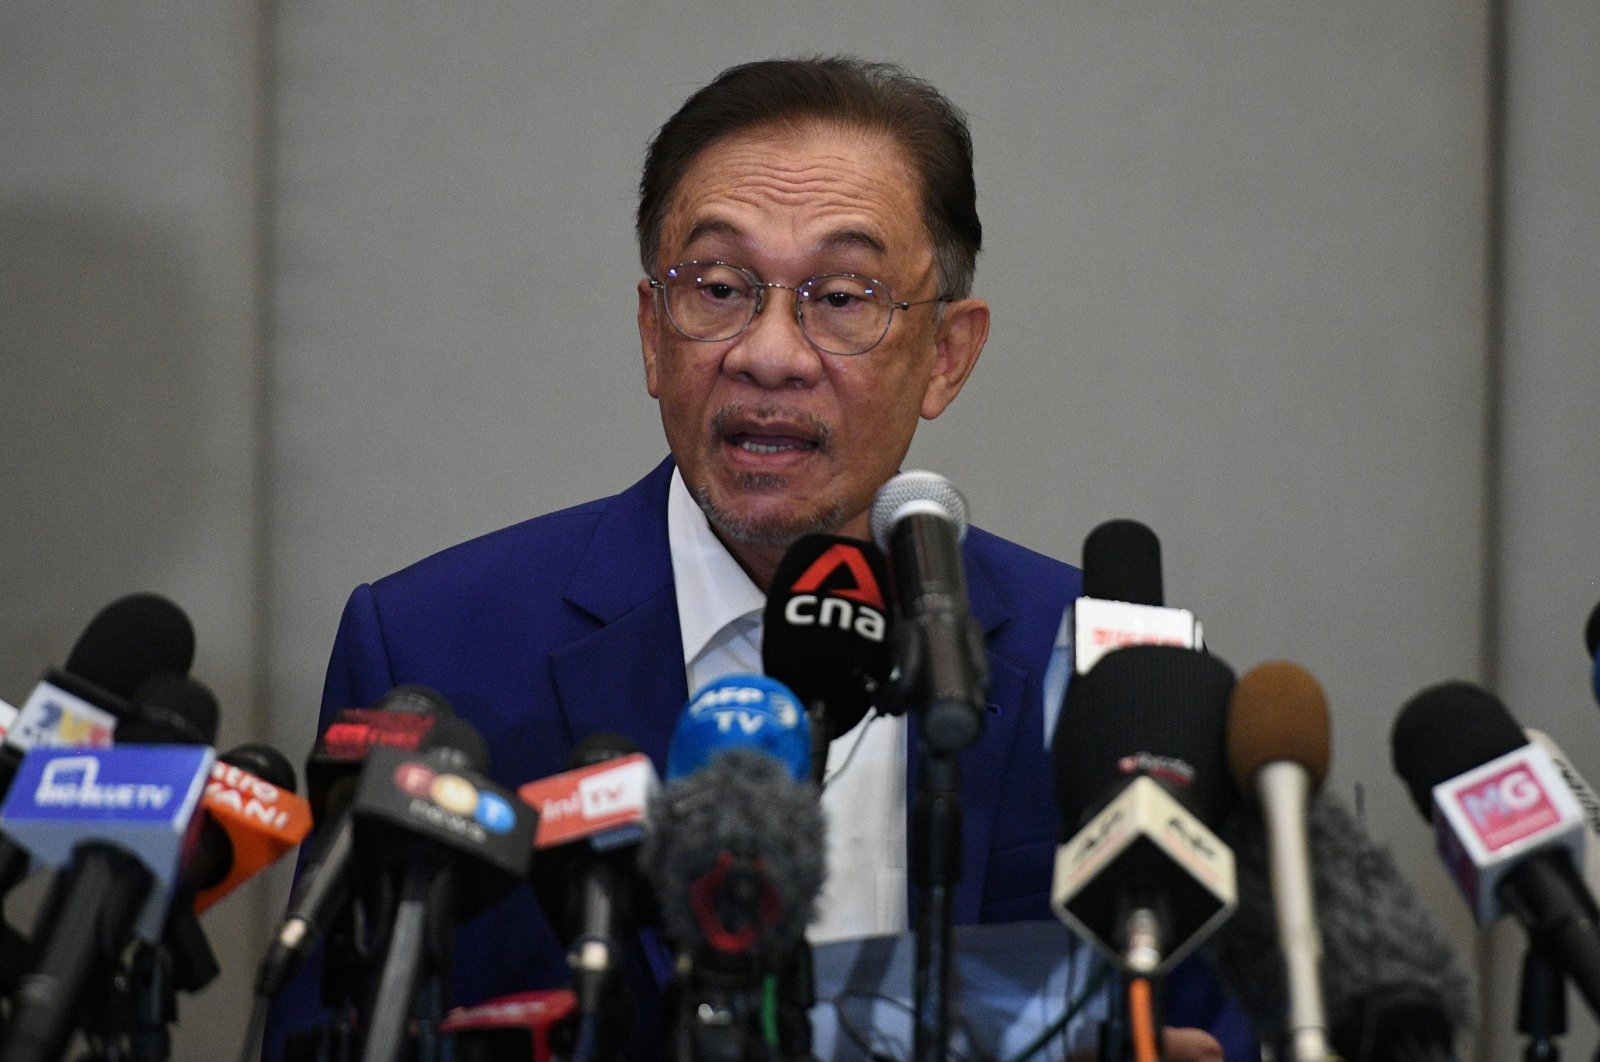 Malaysian opposition leader Anwar Ibrahim speaks at a news conference in Kuala Lumpur, Malaysia, Oct. 13, 2020. (AFP Photo)